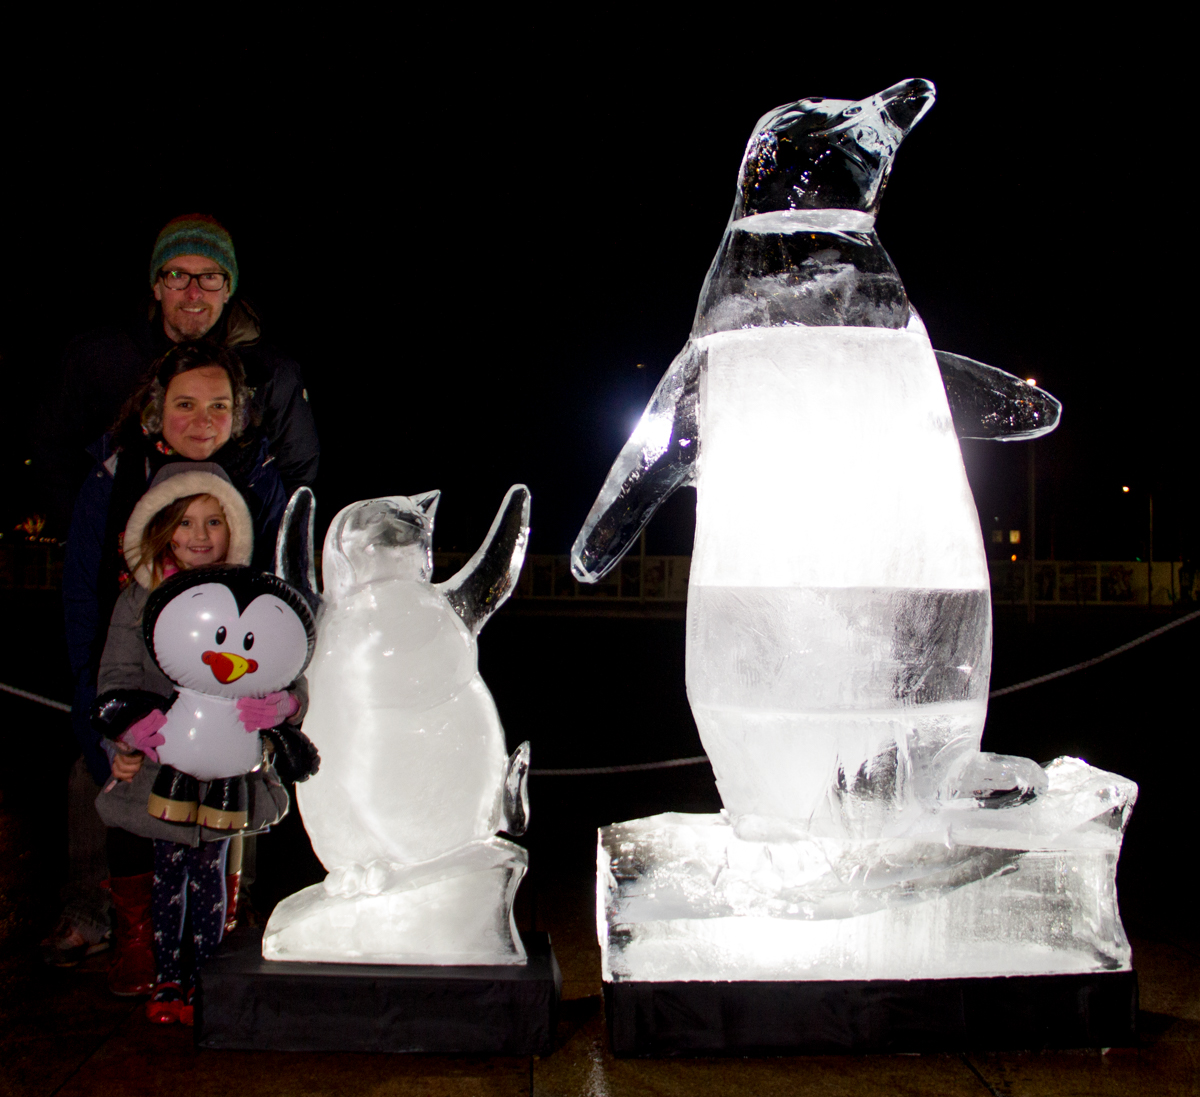 ice_Sculpture_penguins_sand_in_your_eye